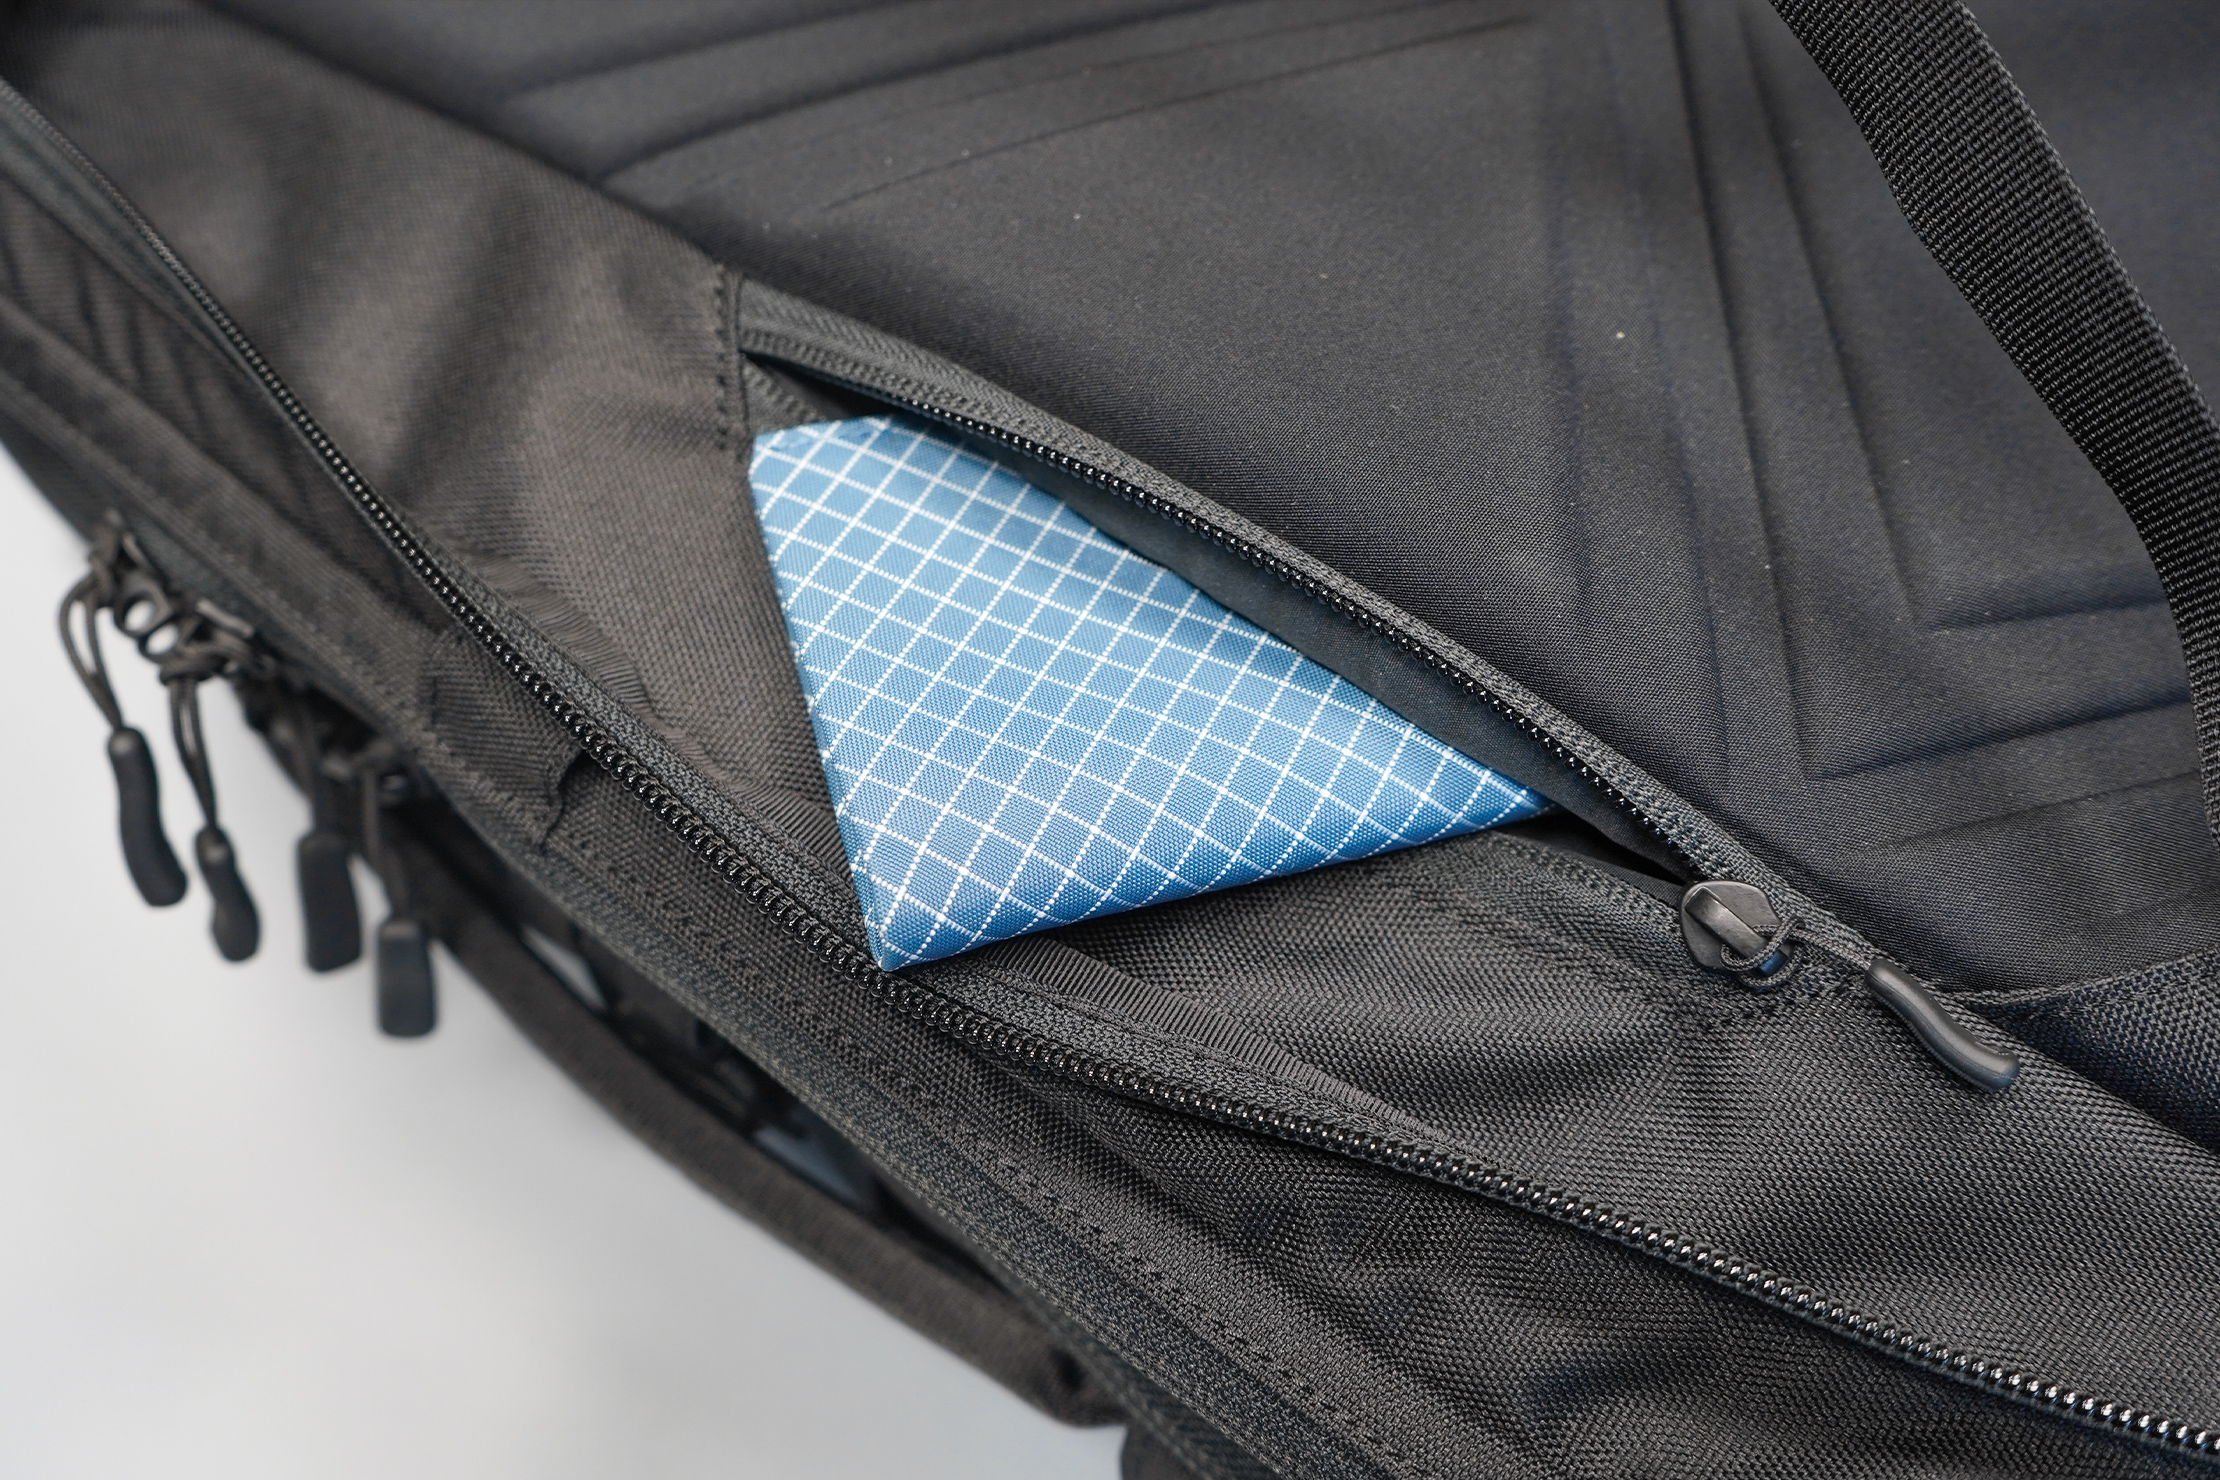 Minaal Carry-On 3.0 | The security pocket is way inland for better protection